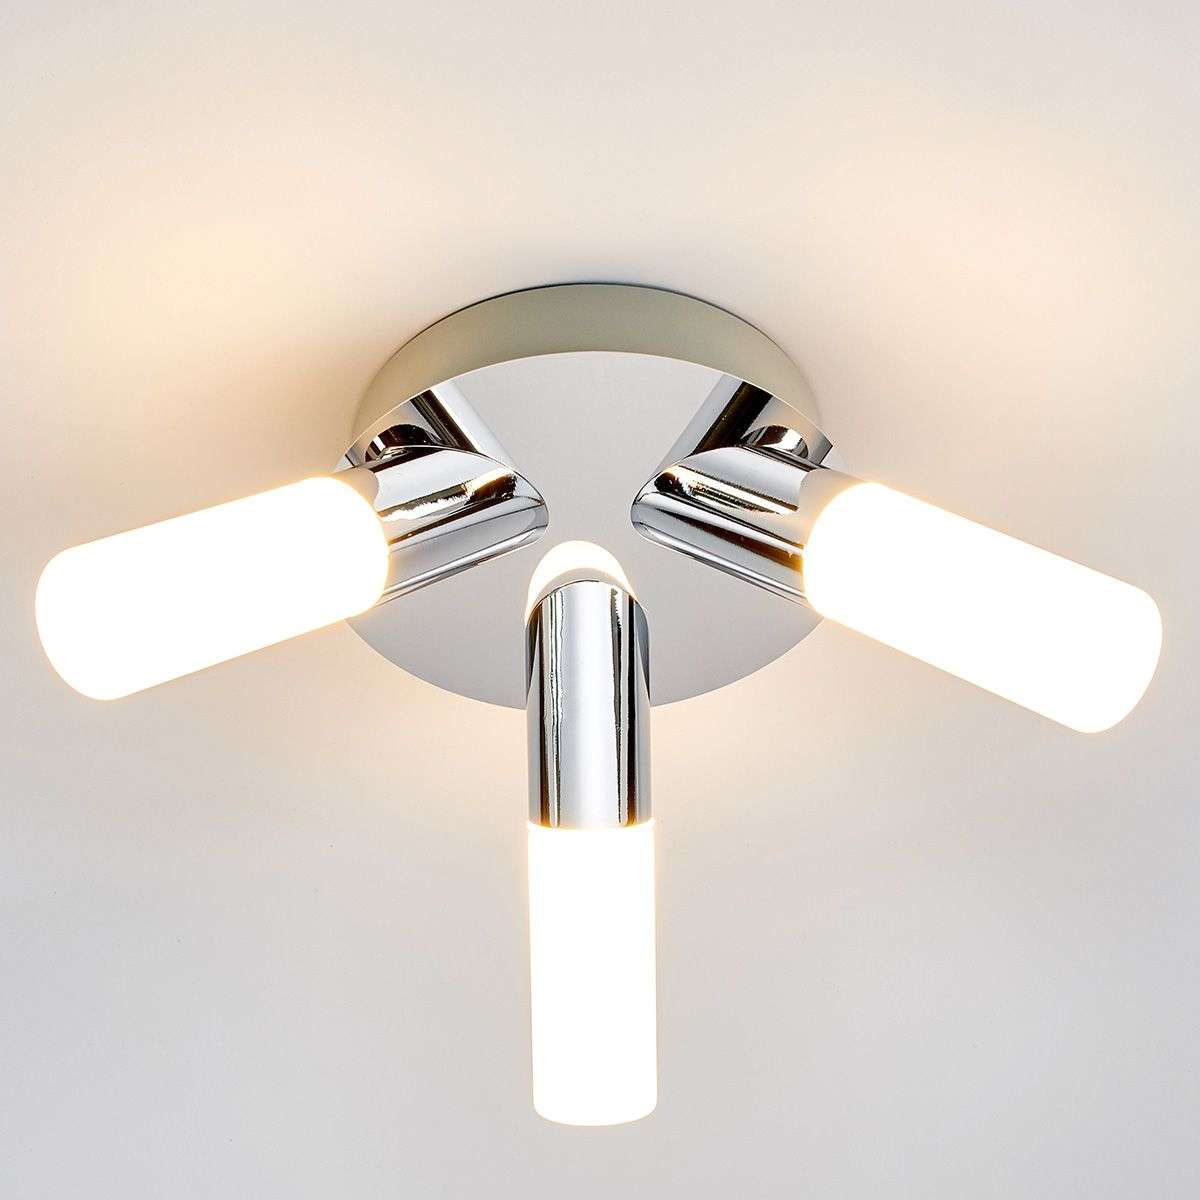 3-light Benaja LED bathroom ceiling lamp | Lights.co.uk